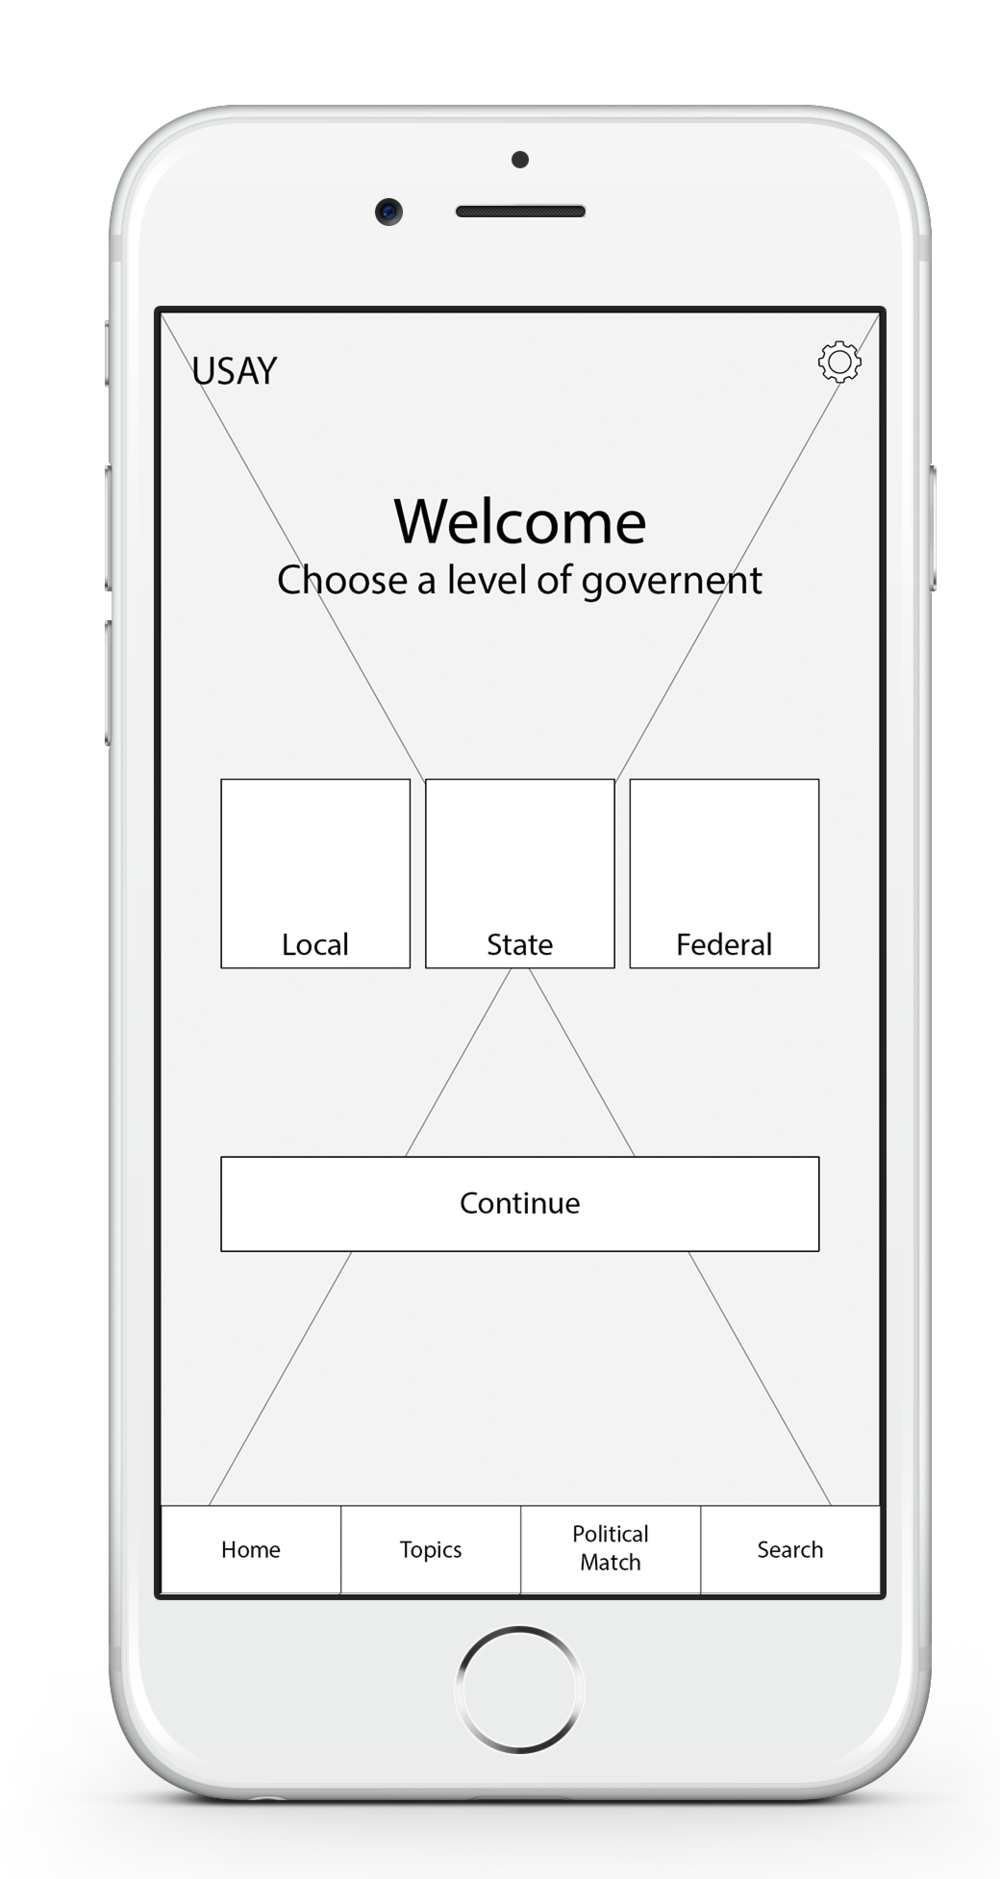 USAY Wireframe Mockup 4.png